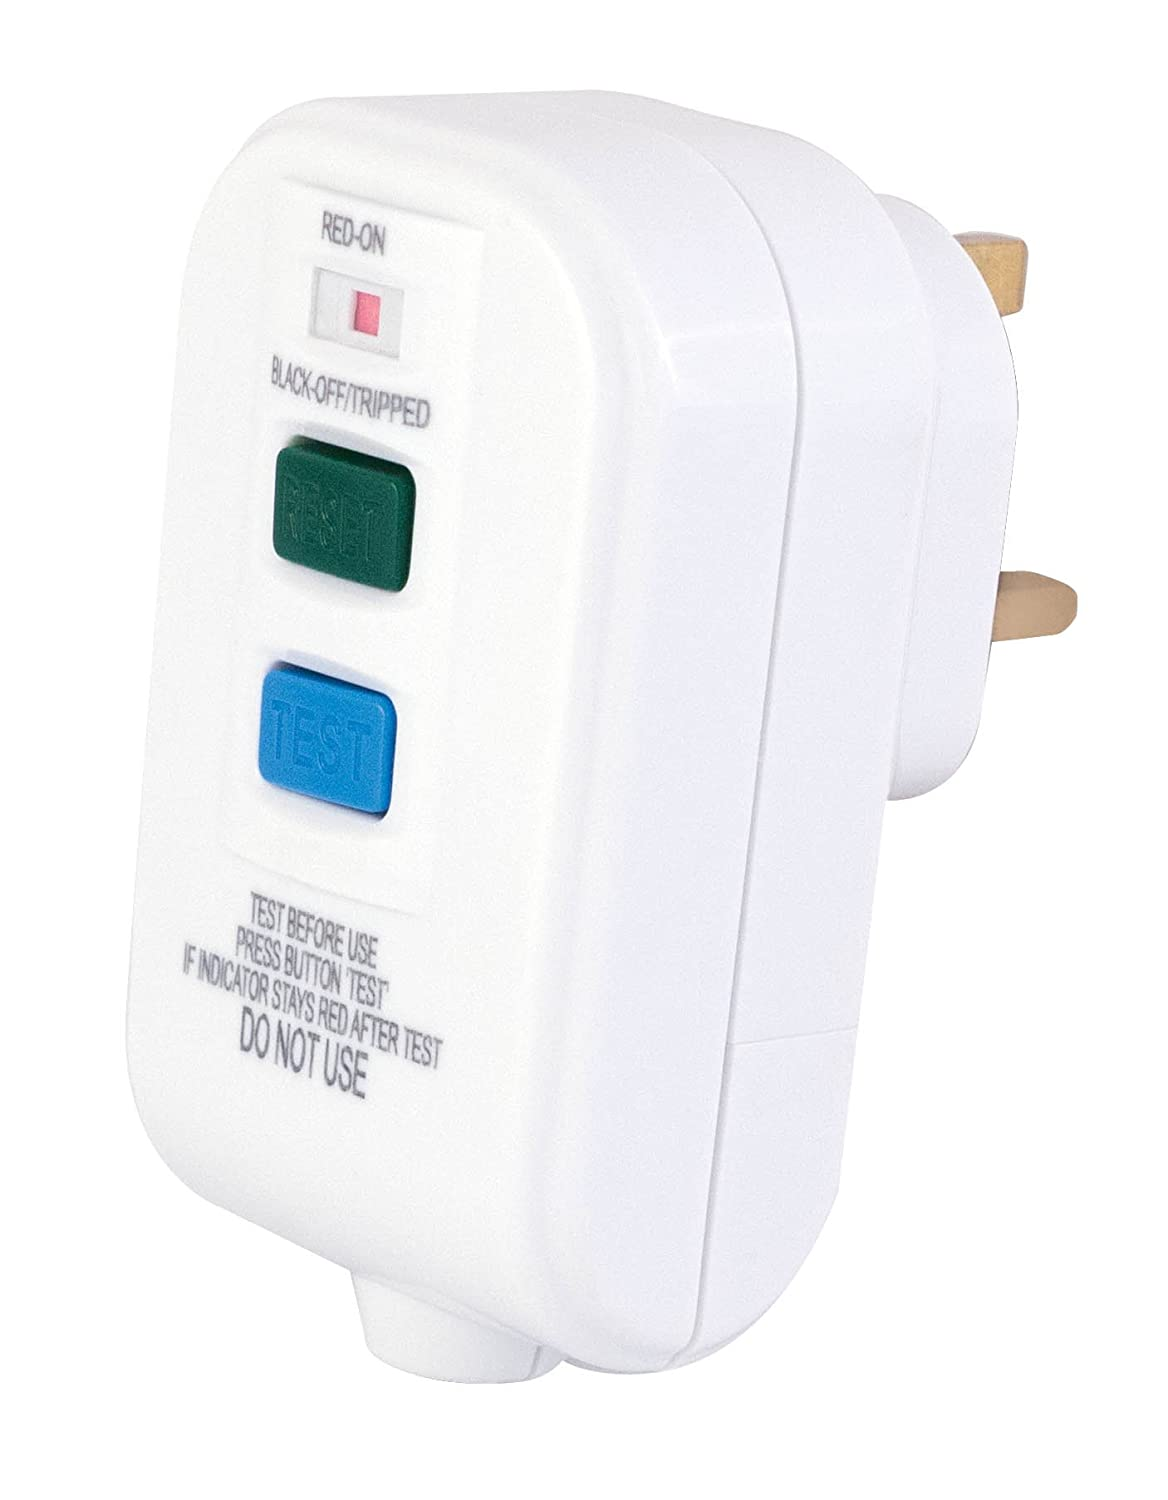 13 Amp White Rcd Re Wireable Plug Passive Latching Top Bs1363 Stevenson Plumbing Electrical Supplies Diy Tools